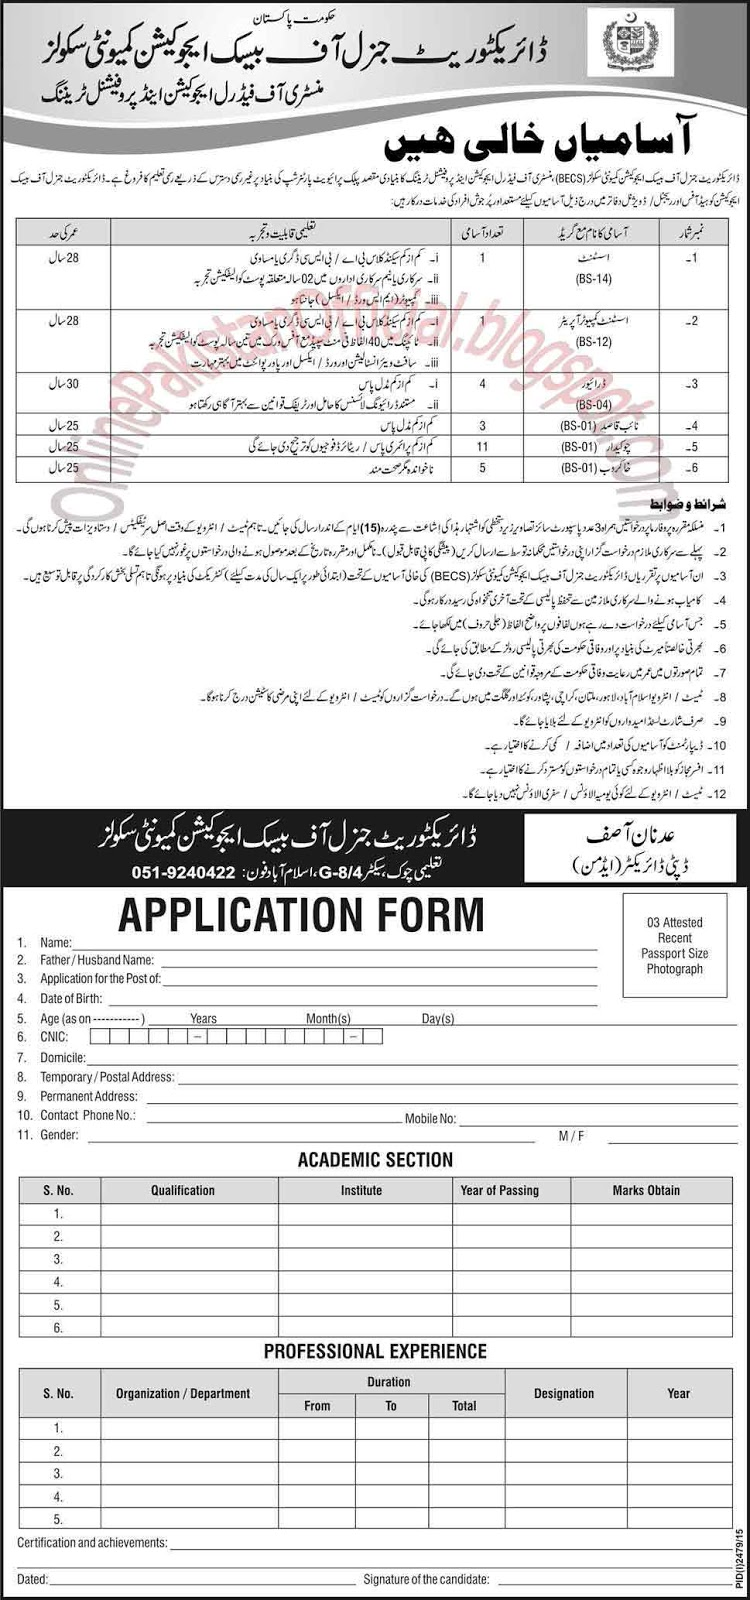 irectorate General of Basic Education Community Schools leatest jobs islamabad